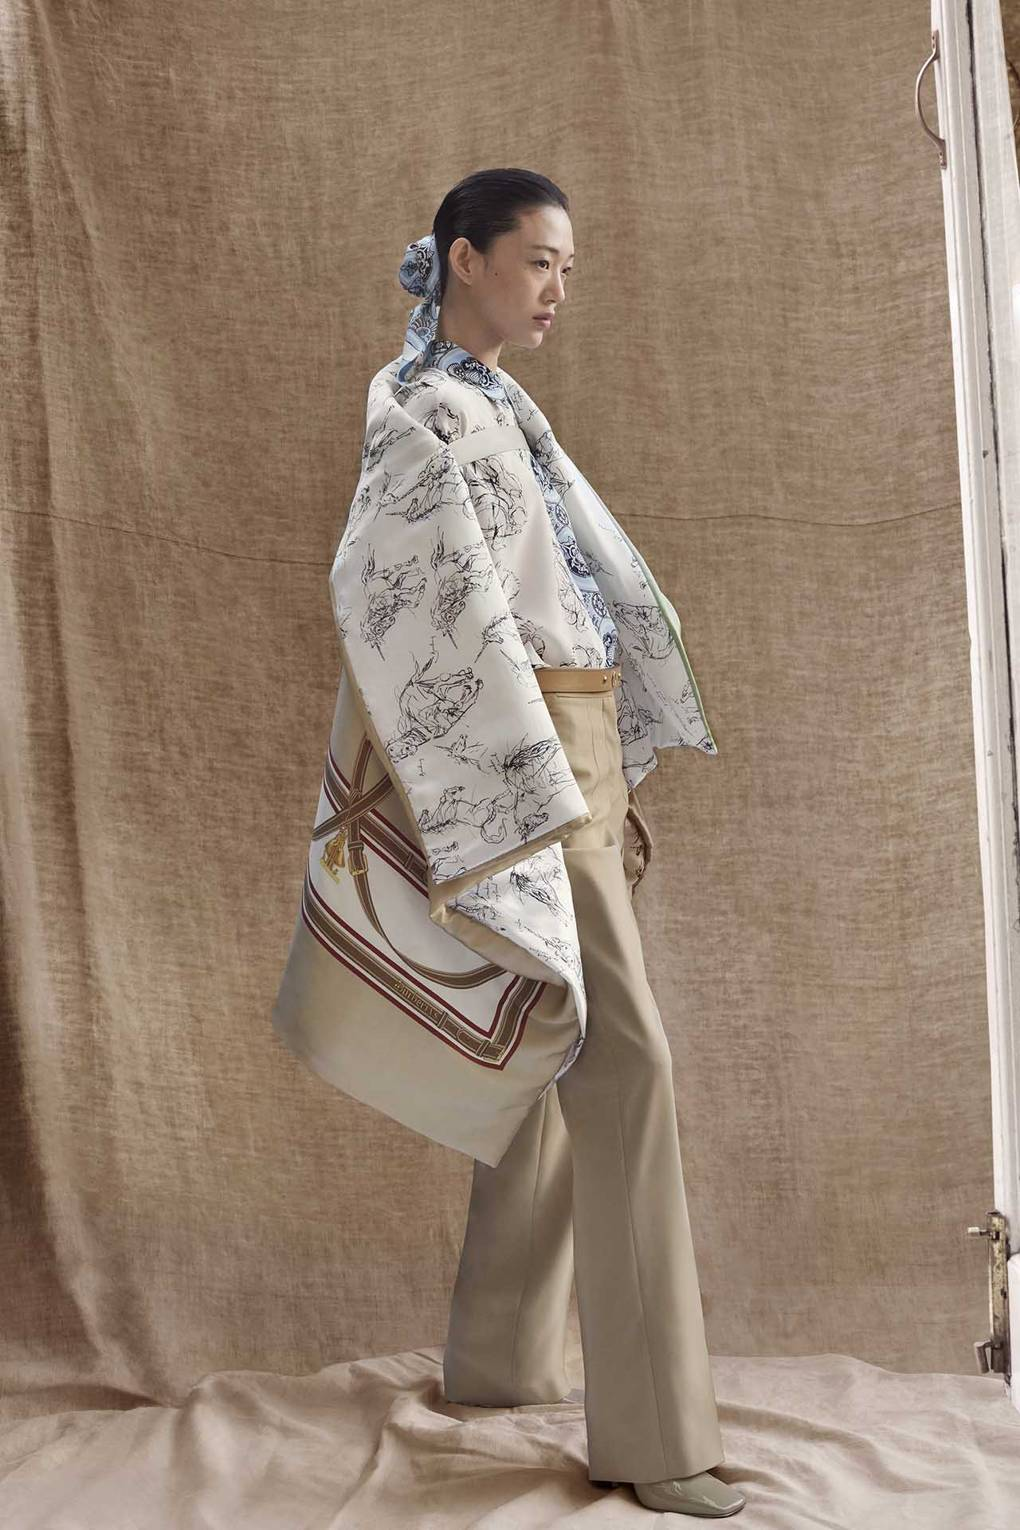 a8ea4f8a527 Burberry Unveils Riccardo Tisci's First Pre-Fall Collection – And It  Features A New Handbag | British Vogue